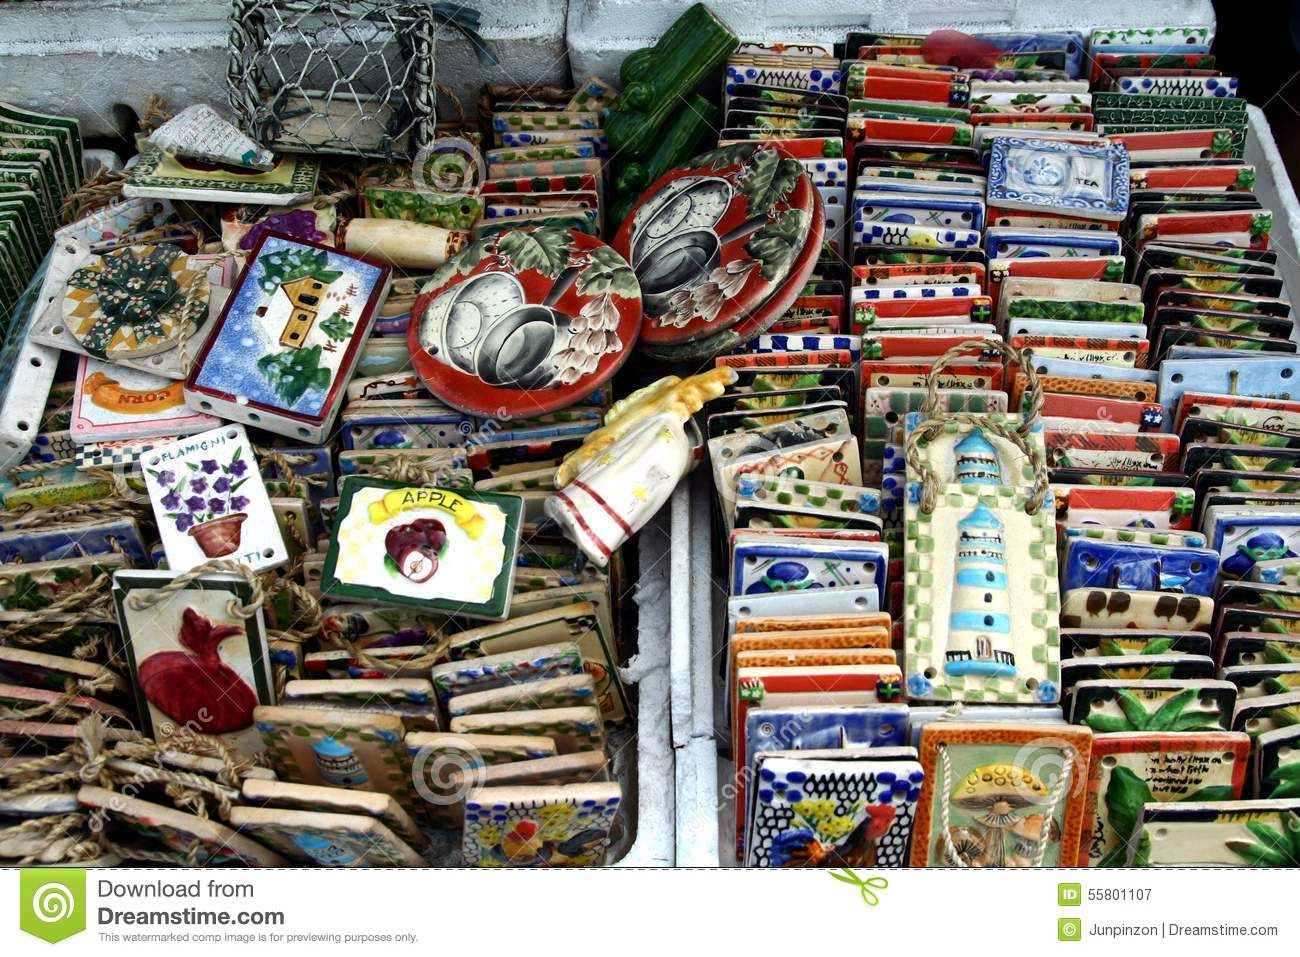 Ornamental And Decorative Ceramic Tiles Sold At A Store In Dapitan Arcade In Manila Philippines